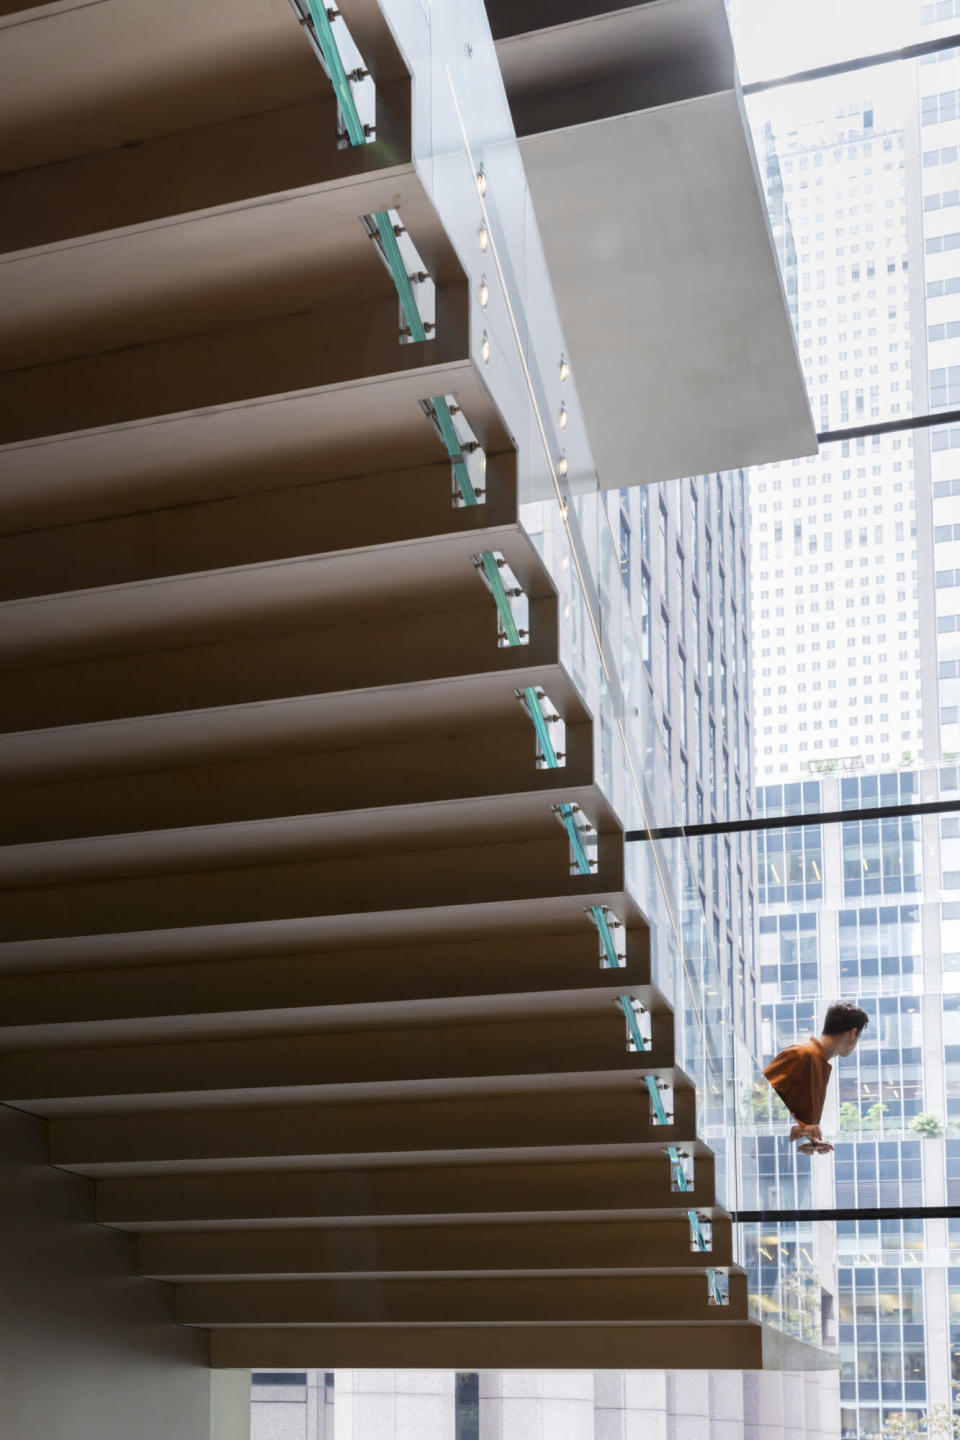 This undated image released by the The Museum of Modern Art shows an interior view of the Blade Stair Atrium, part of the renovation and expansion effort at MoMA in New York. As the Museum of Modern Art in Manhattan prepares to reopen following a $450 million, 47,000 square foot expansion, visitors can prepare for much more than much-needed elbow room there - and new juxtapositions of works meant to encourage broader perspectives and new narratives. (Iwan Baan/MoMA via AP)